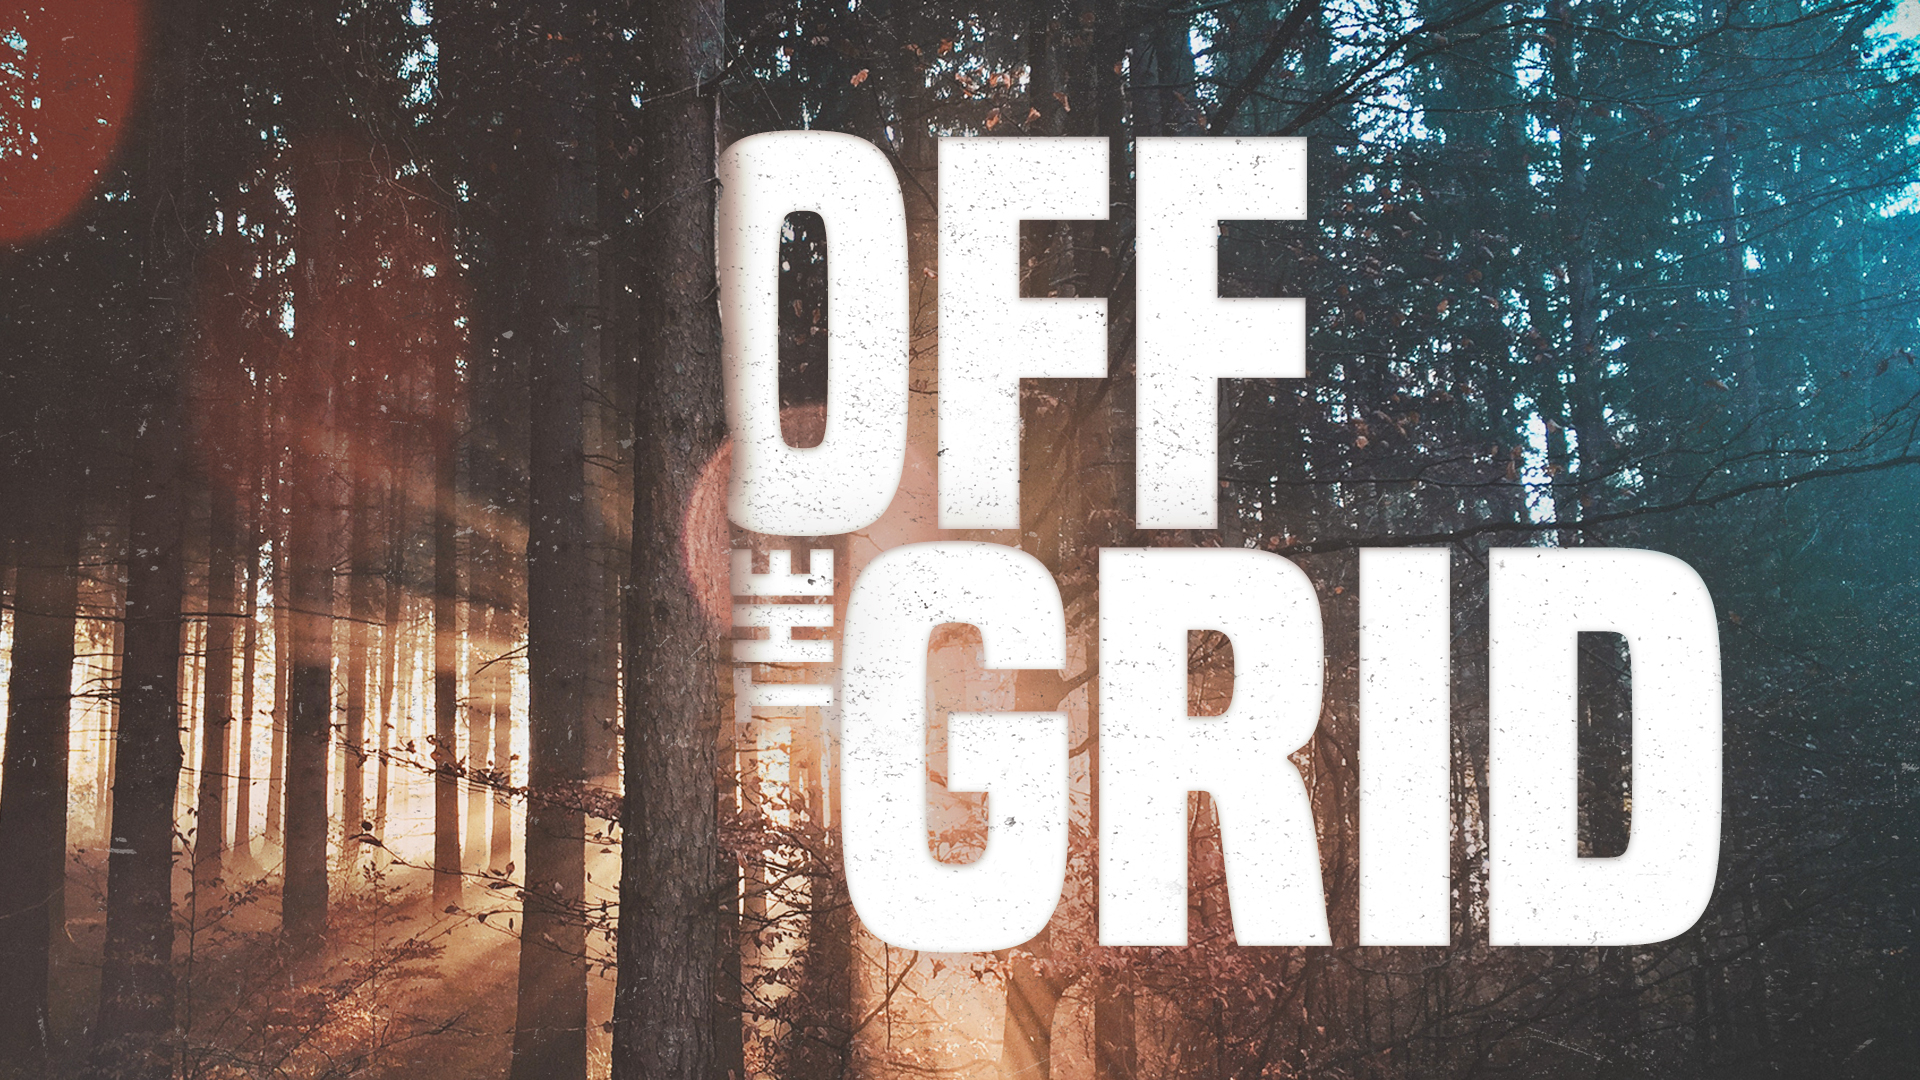 off-the-grid_1920x1080.JPG